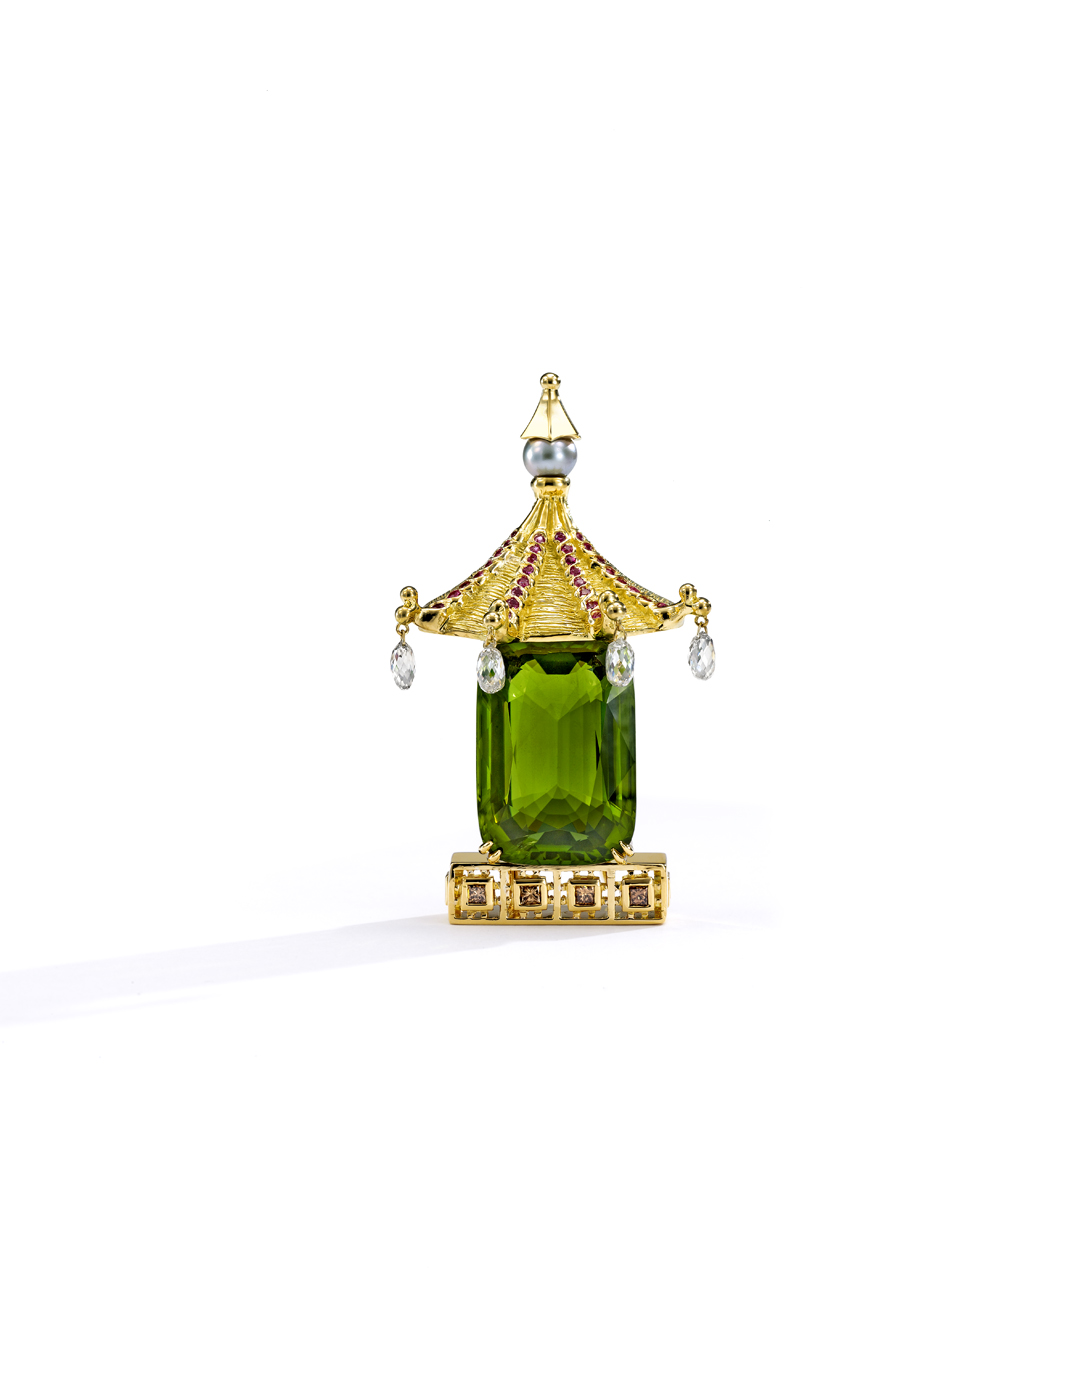 mish_jewelry_products_Chinois-Brch-Carousel-2